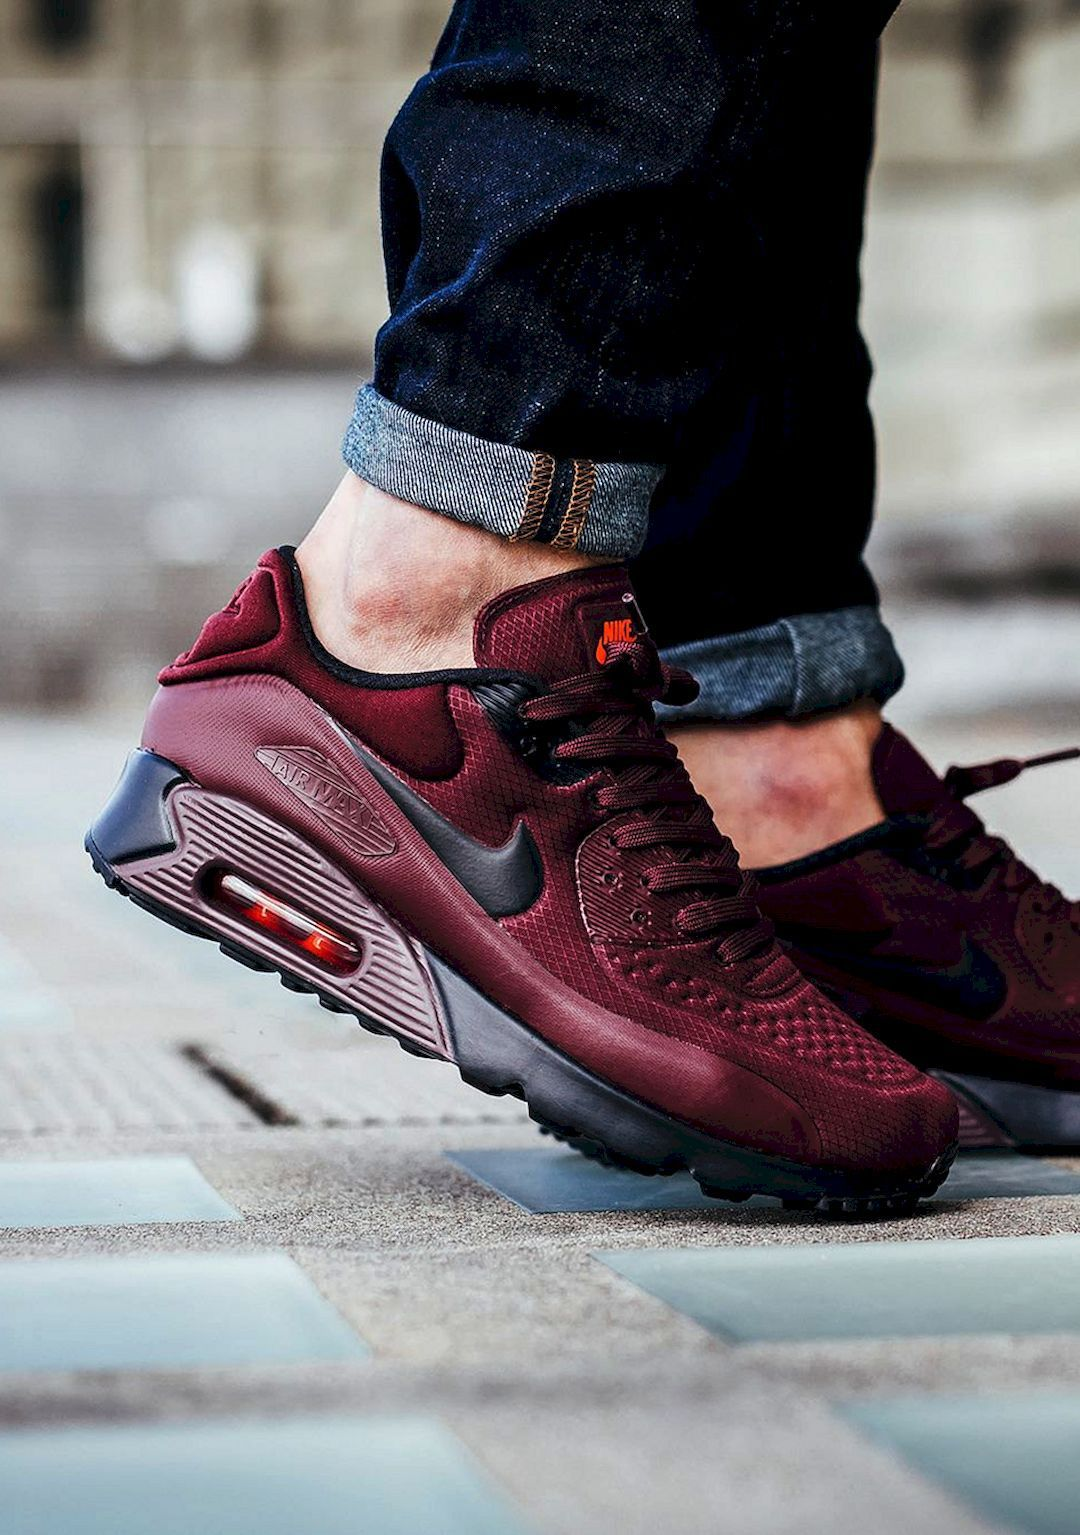 Nike Air Max 270, New Air Max Line for Lifestyle | Chaussure